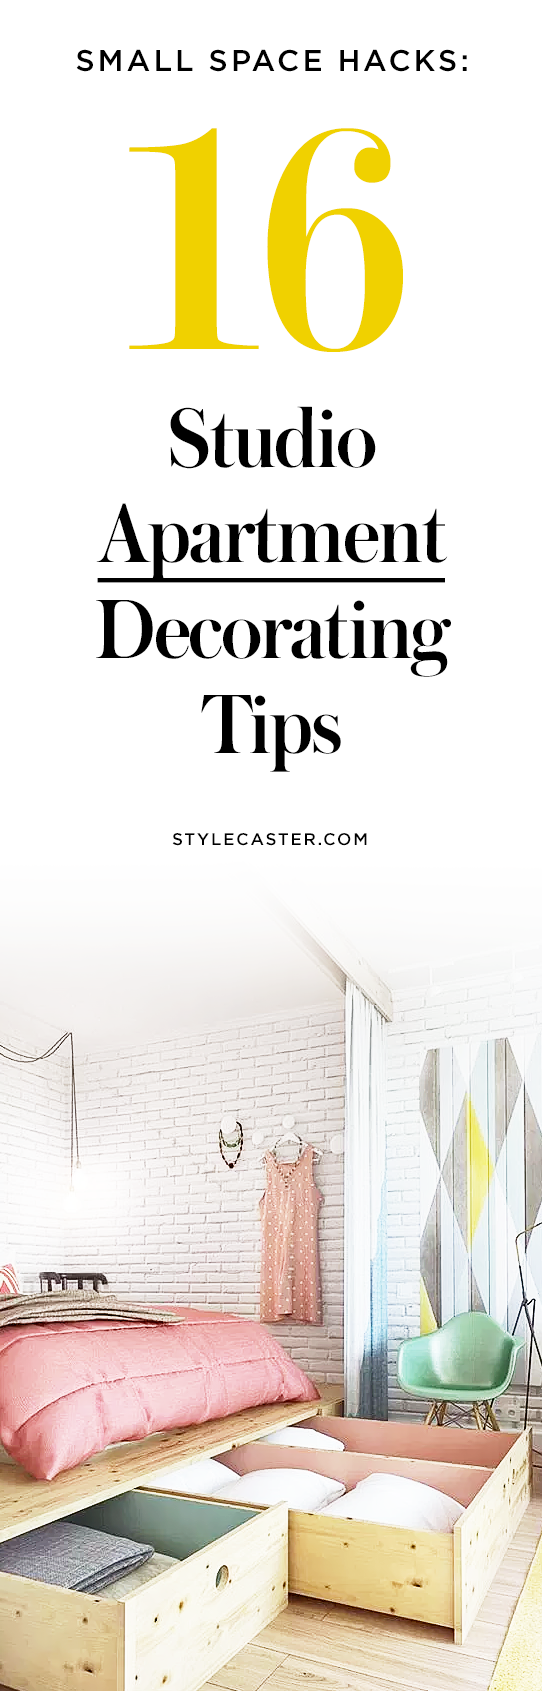 16 Studio Apartment Decorating Tips to Transform Your Small Space | @stylecaster